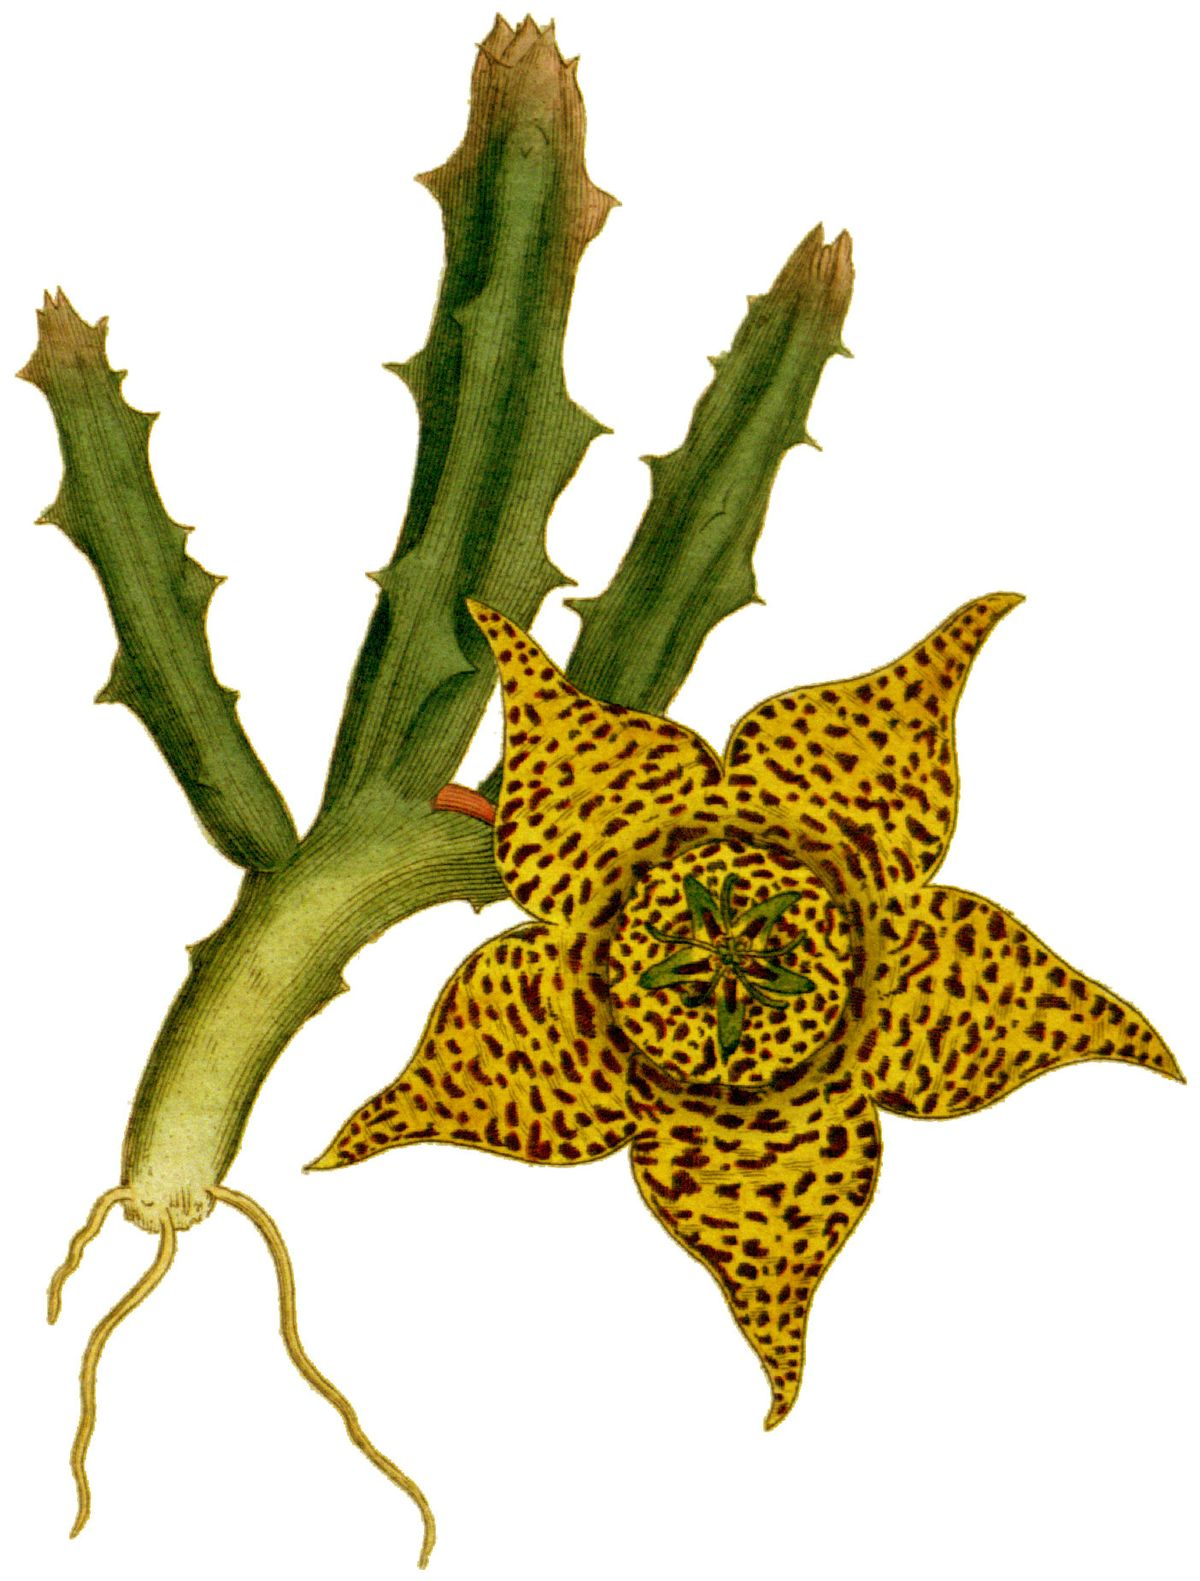 Orbea variegata wikipedia for Stapelia variegata